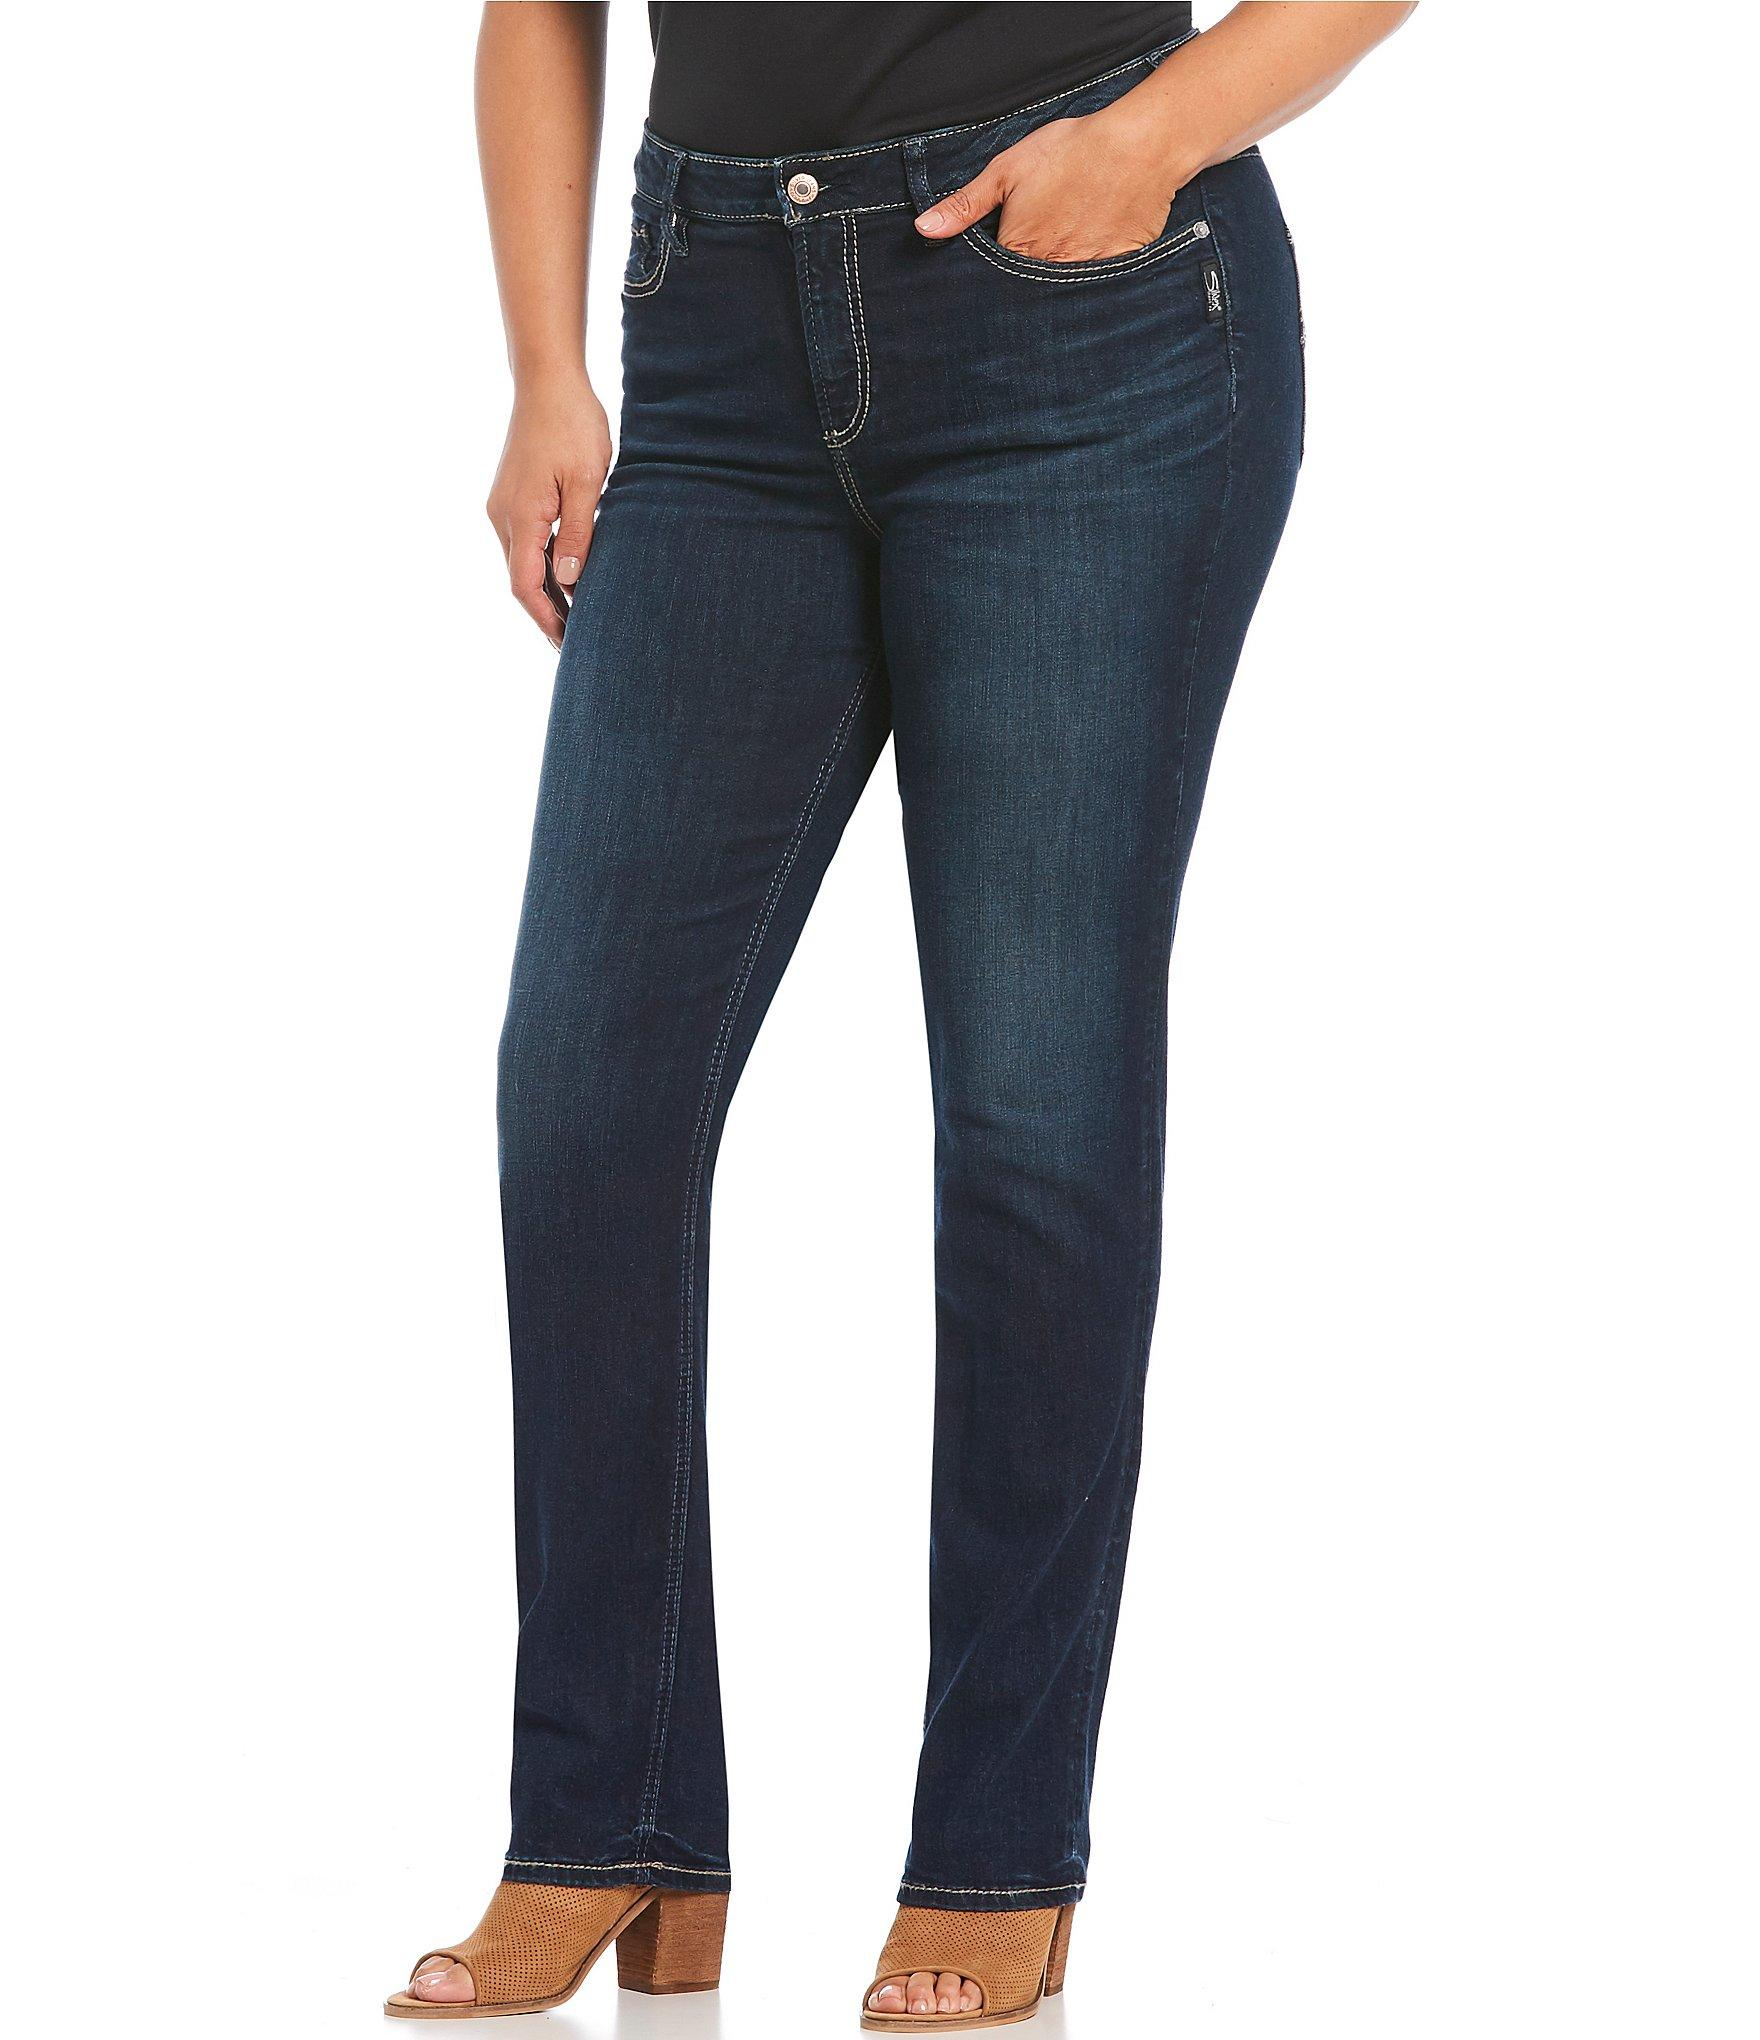 f3847138 Lyst - Silver Jeans Co. Plus Size Avery Curvy High-rise Straight ...